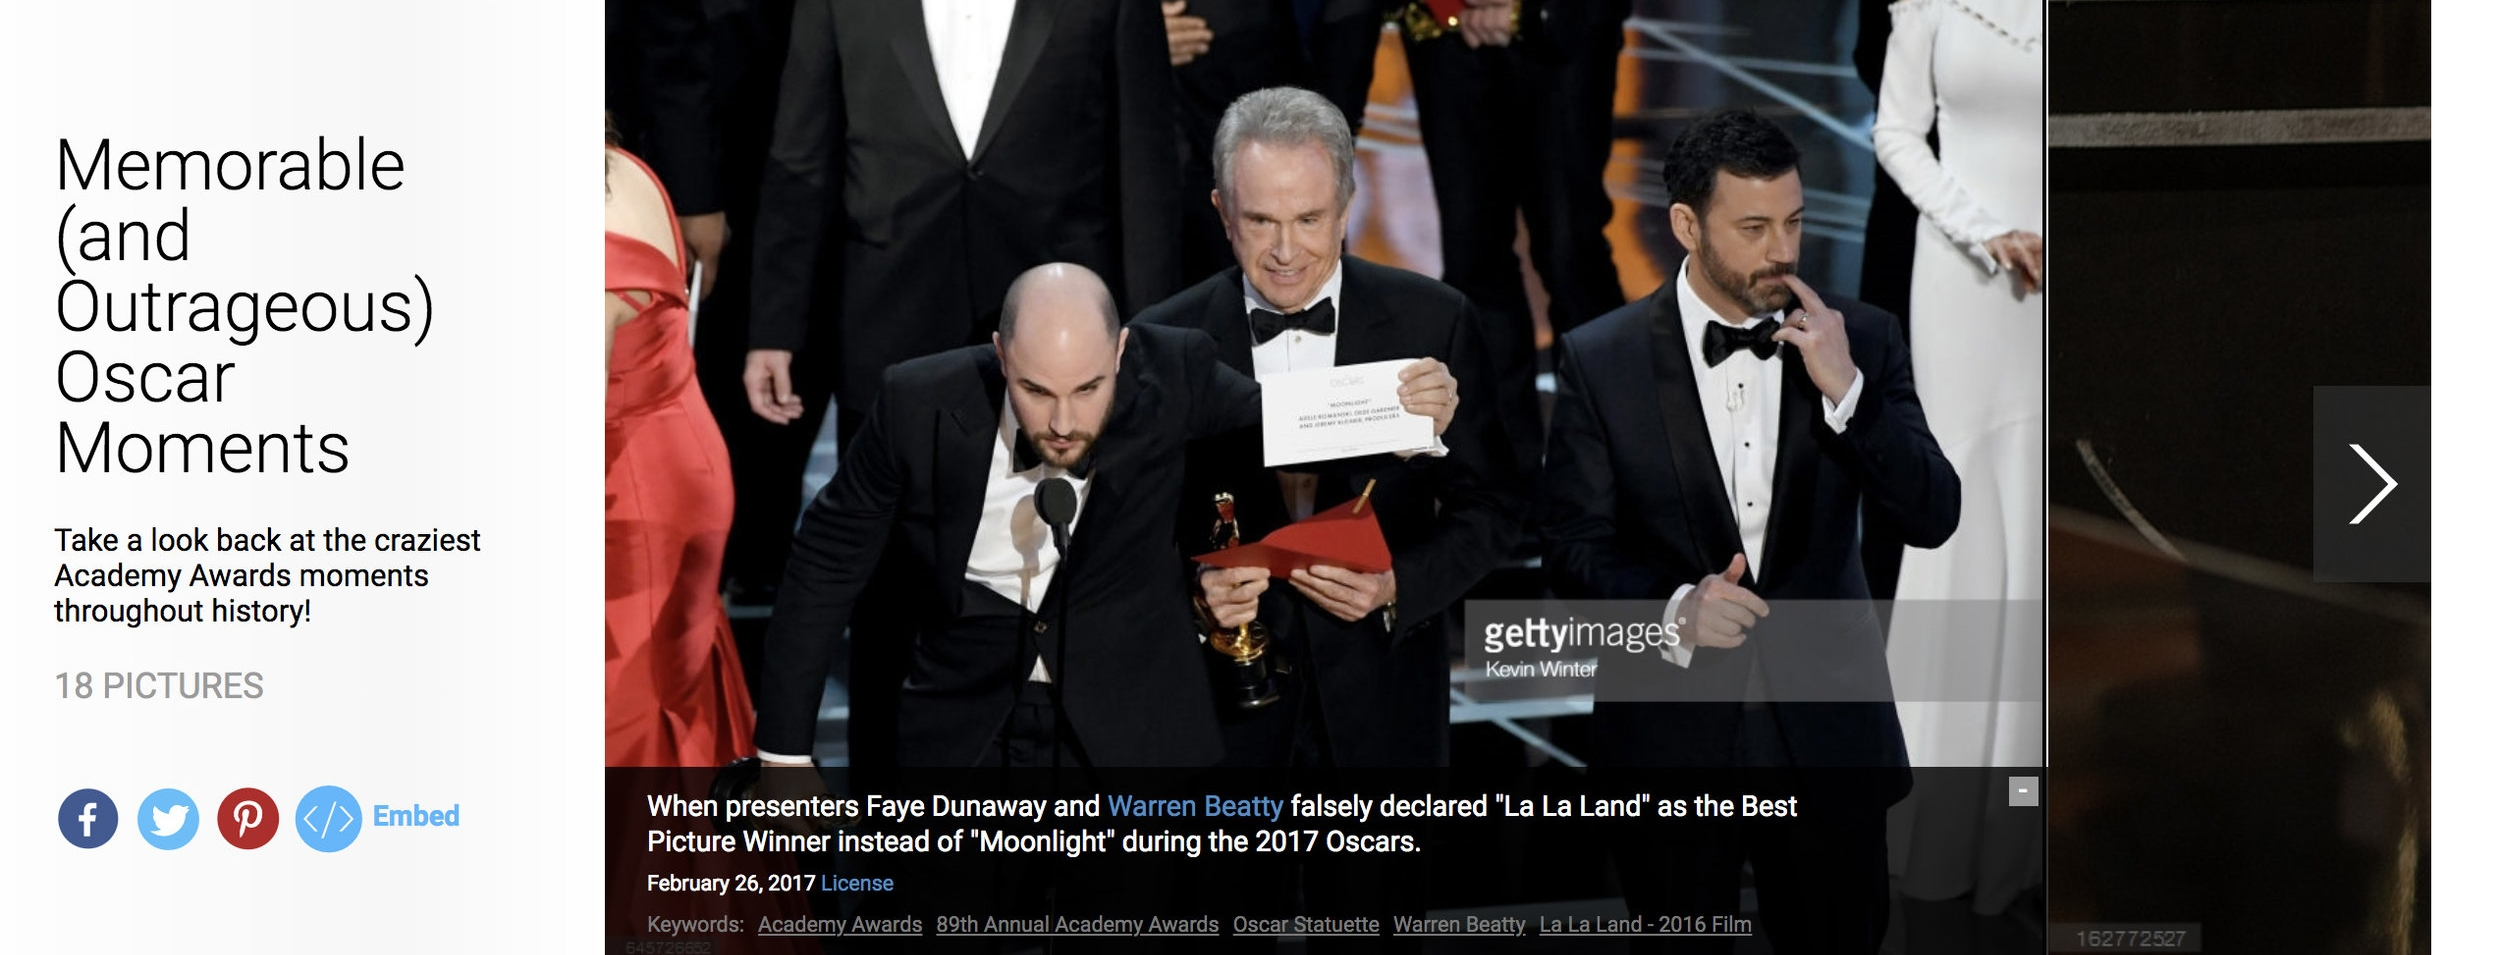 "Getty Images: Created nightly topical sets such as ""Memorable (and Outrageous) Oscar Moments"".   Click here for gallery"